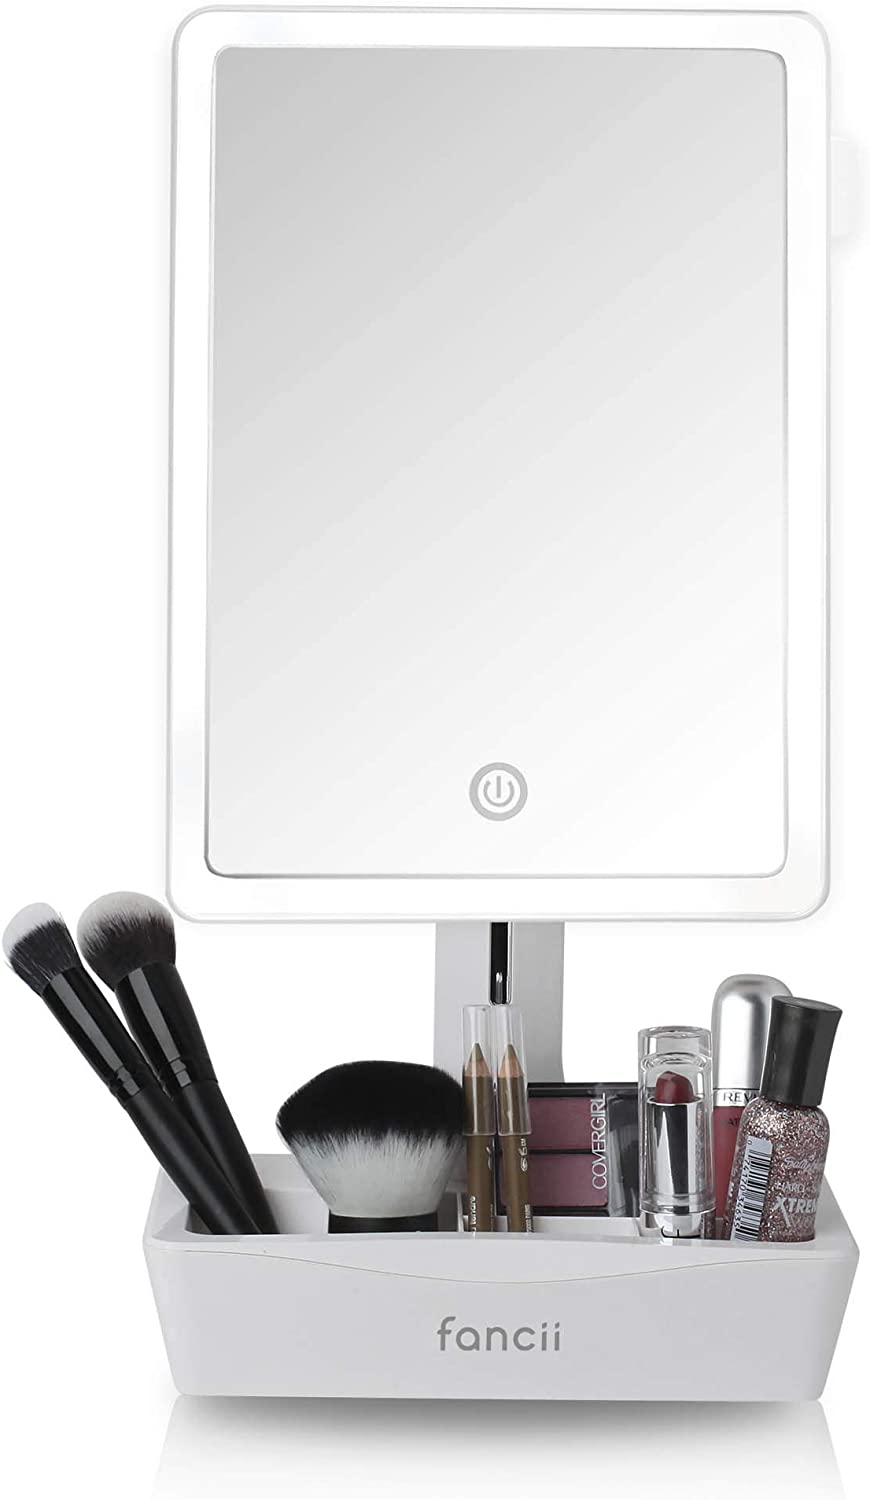 Fancii 10X Lighted Tabletop Makeup Mirror Reviews